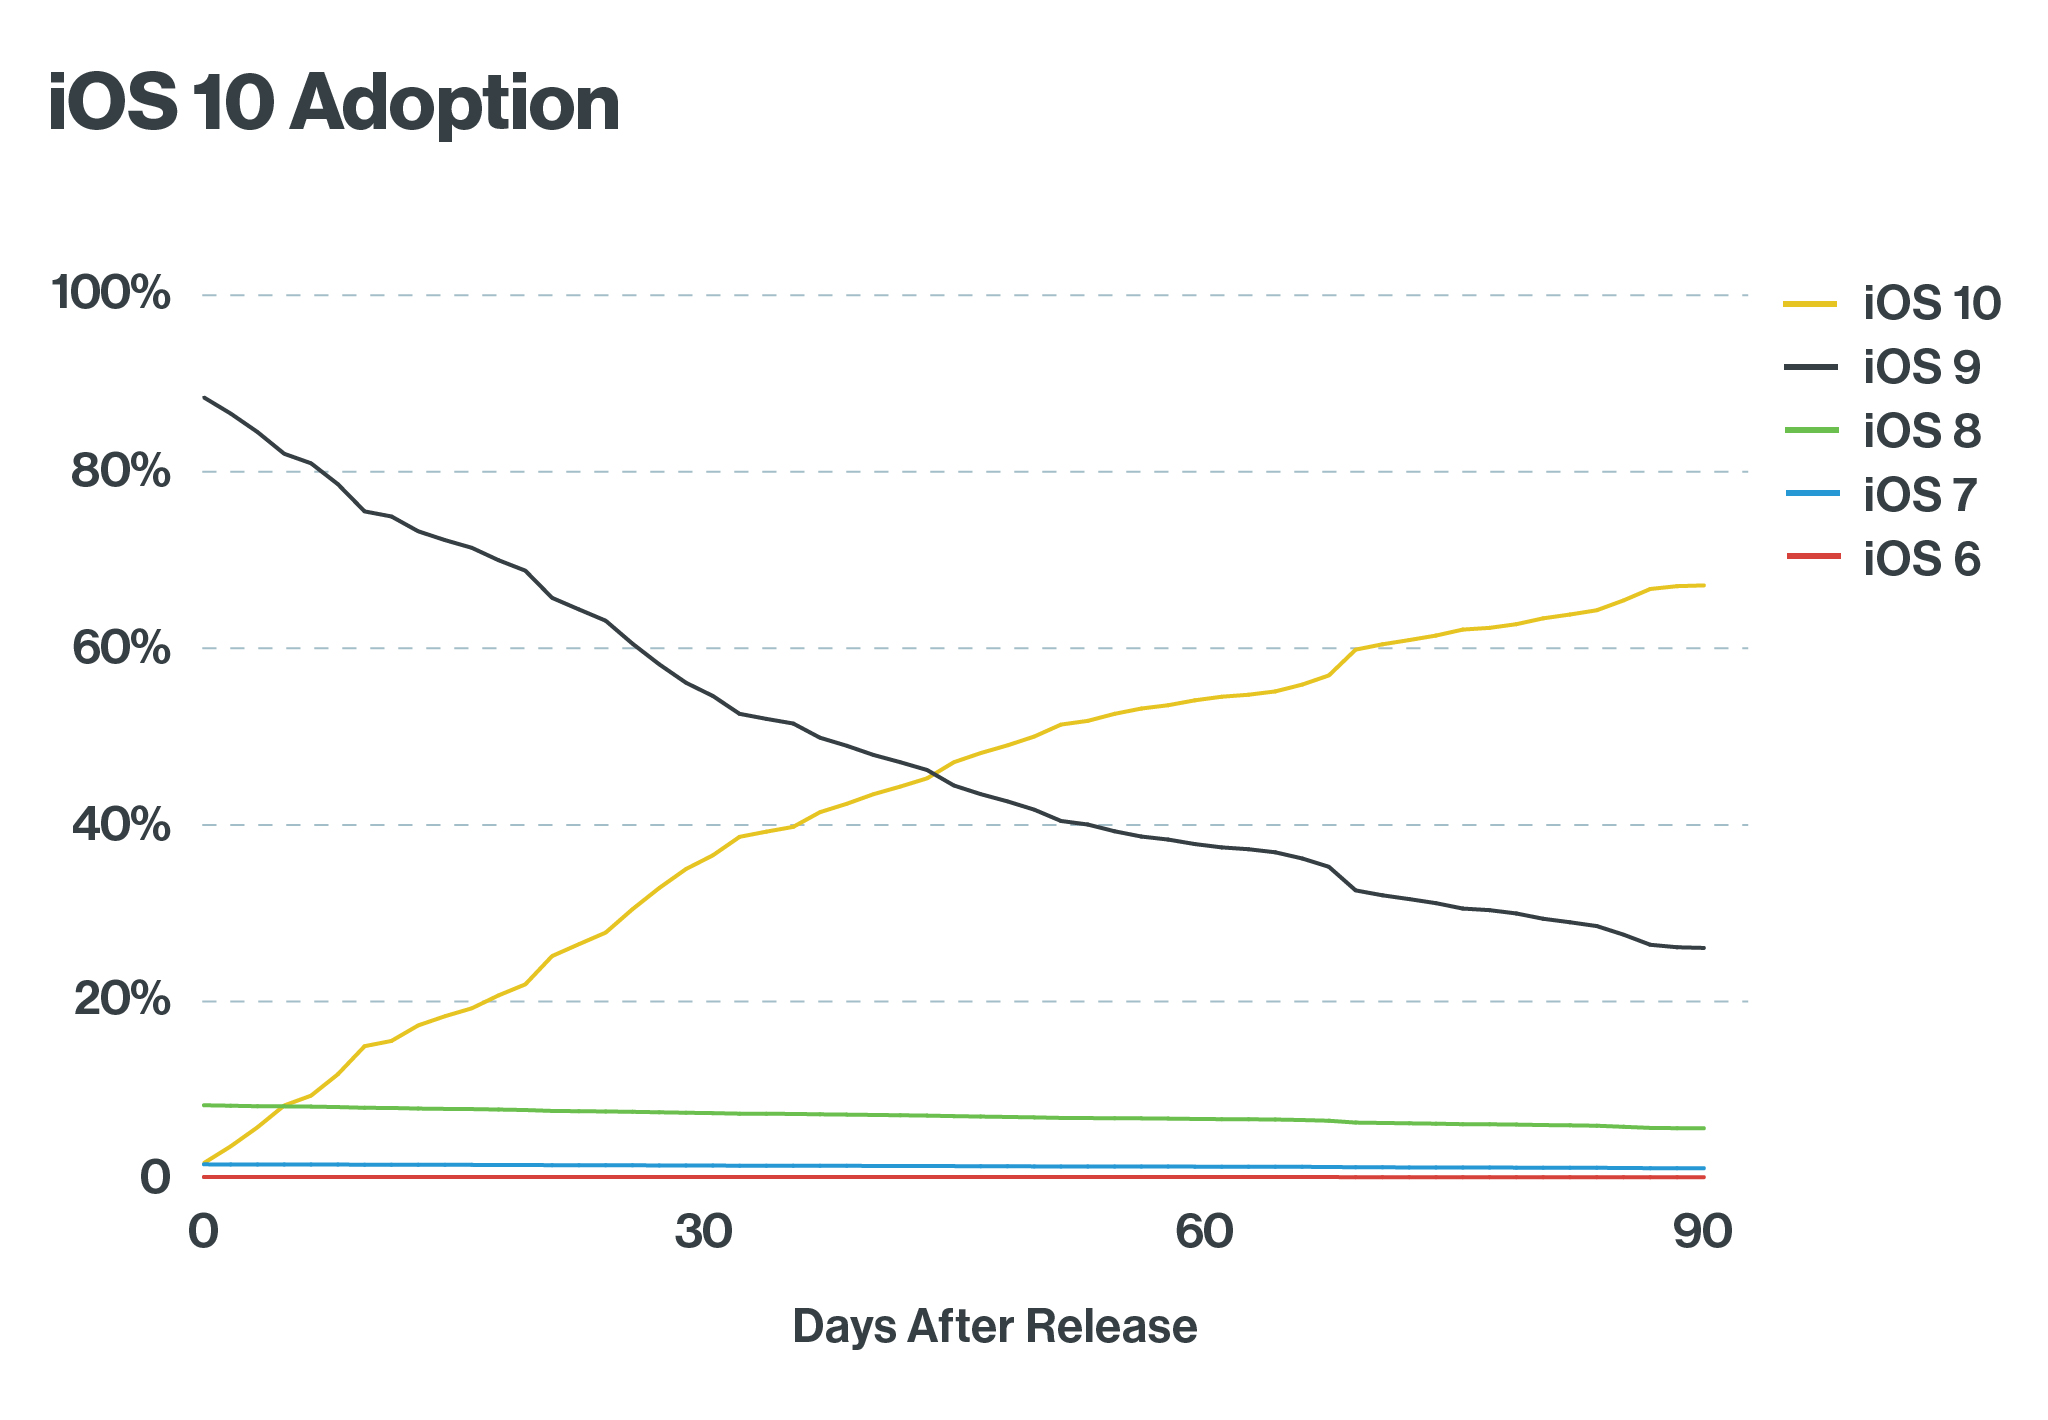 iOS 10 Adoption